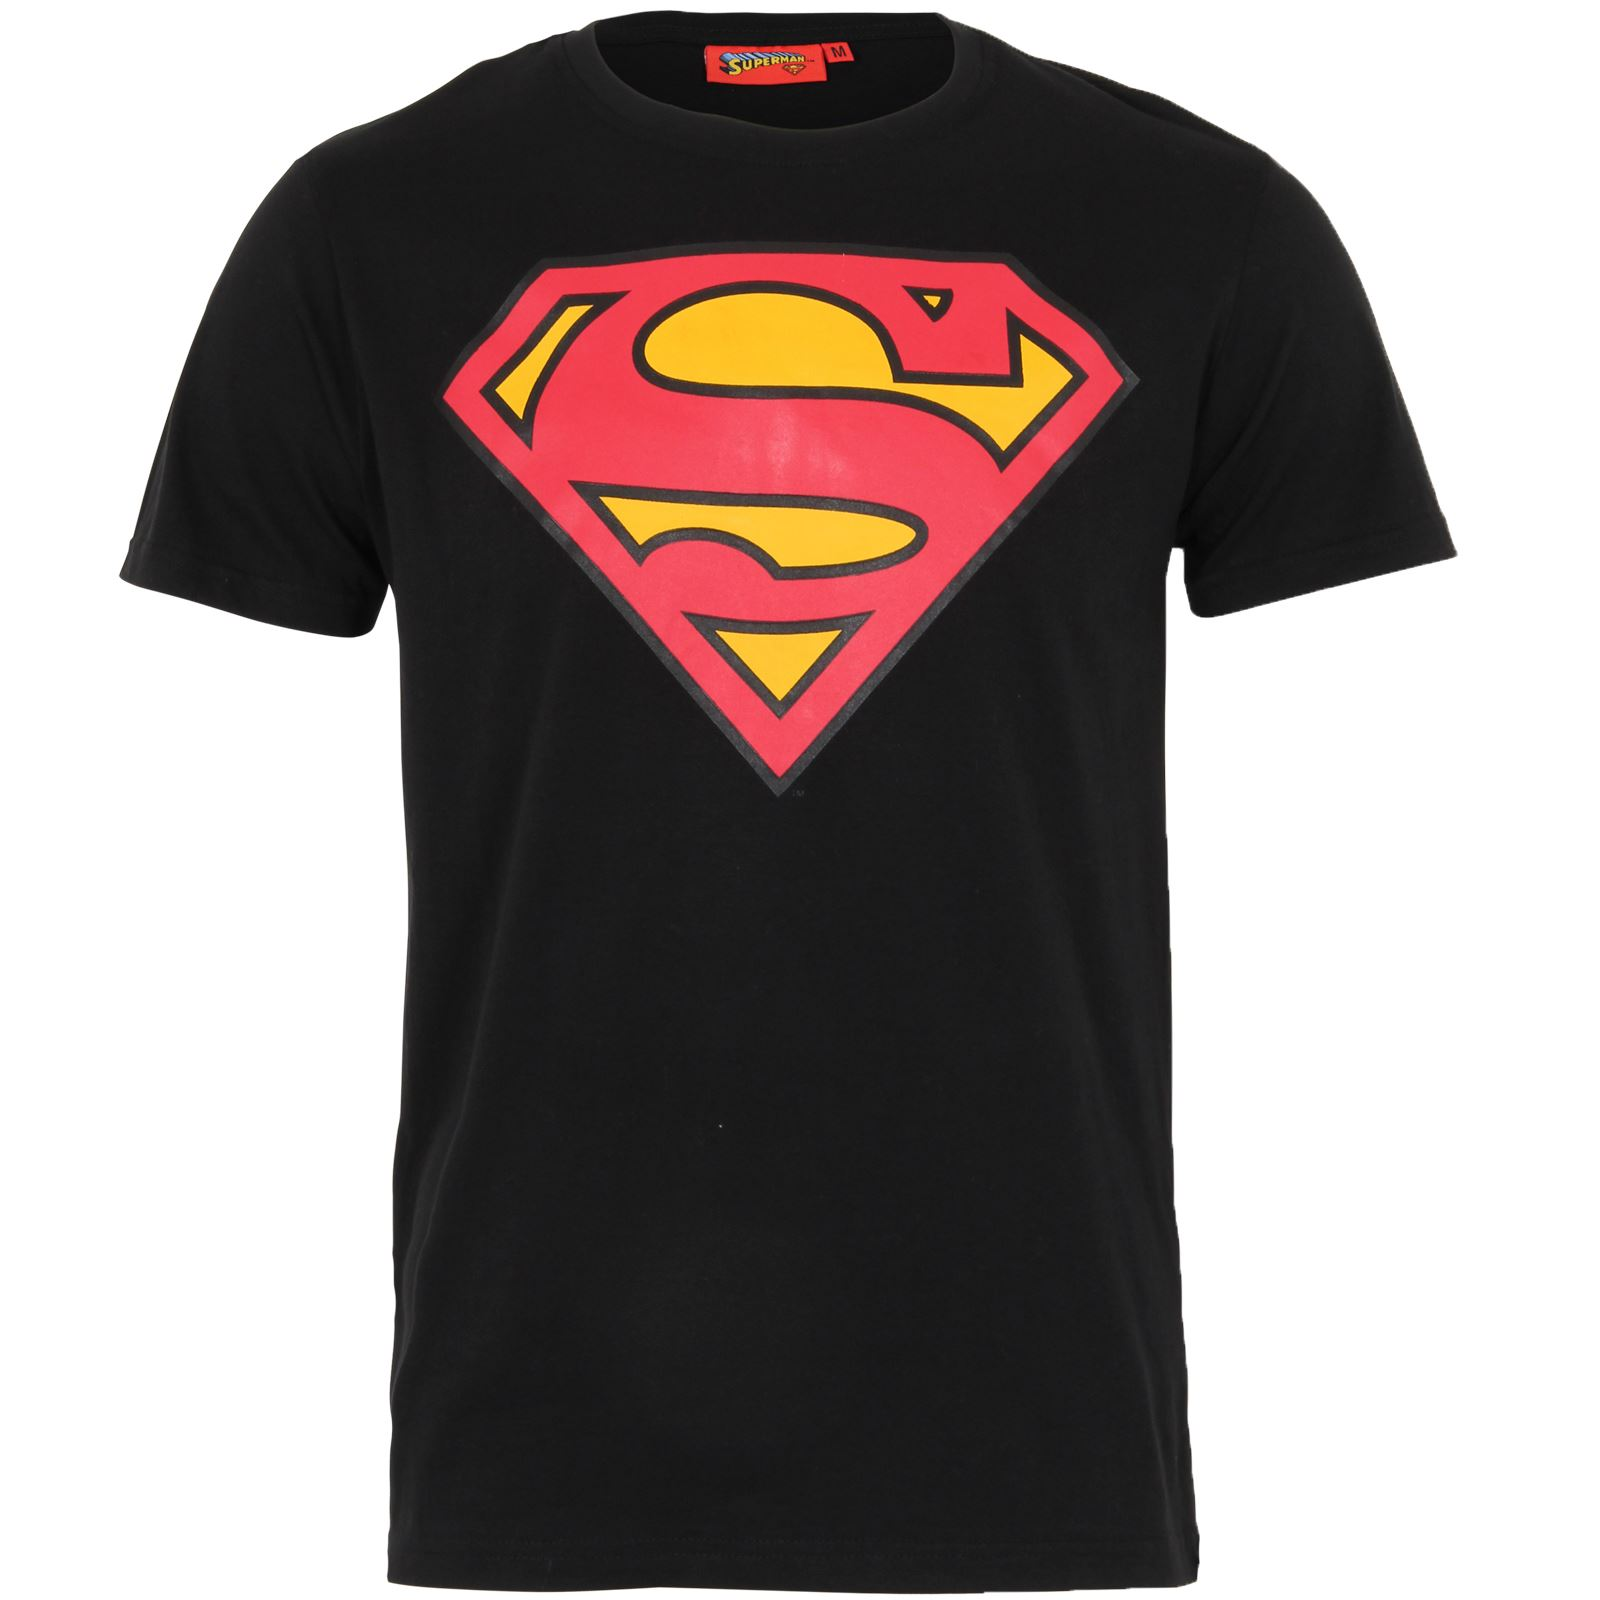 Mens boys unisex new comic superman superhero logo short Boys superhero t shirts